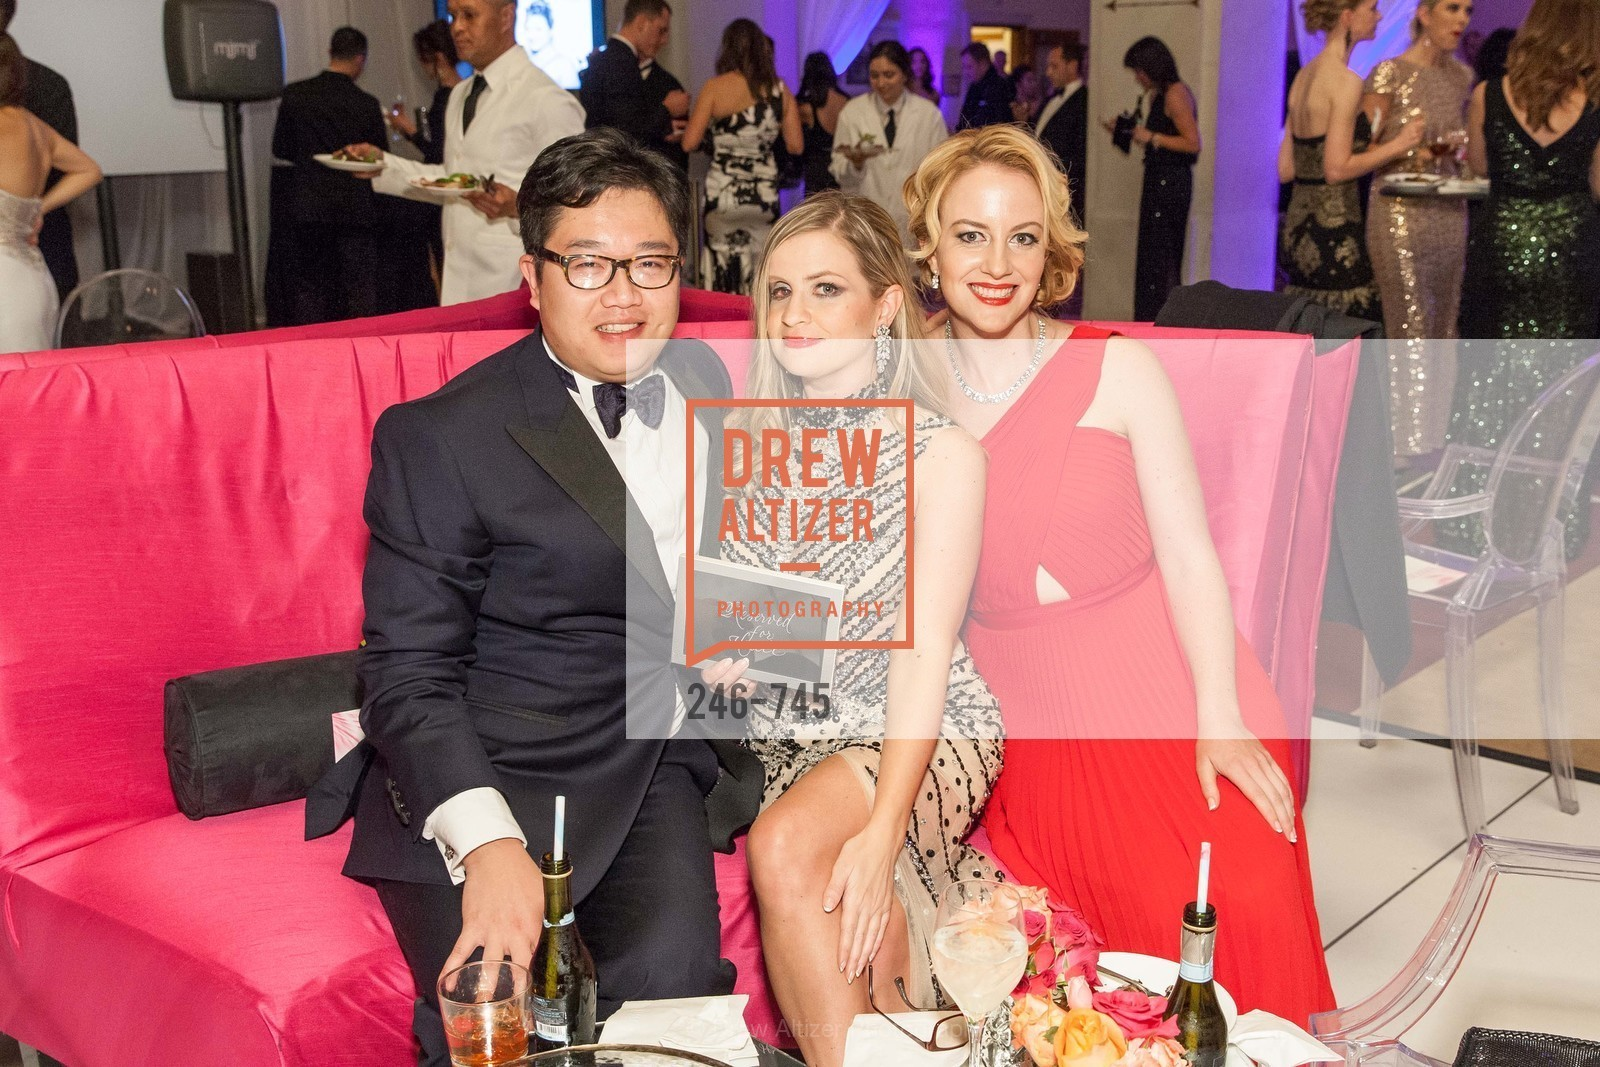 Christopher Tse, Julie Hall, Stephanie Sparling, San Francisco Ballet 2016 Opening Night Gala Part 2, San Francisco City Hall, January 21st, 2016,Drew Altizer, Drew Altizer Photography, full-service agency, private events, San Francisco photographer, photographer california